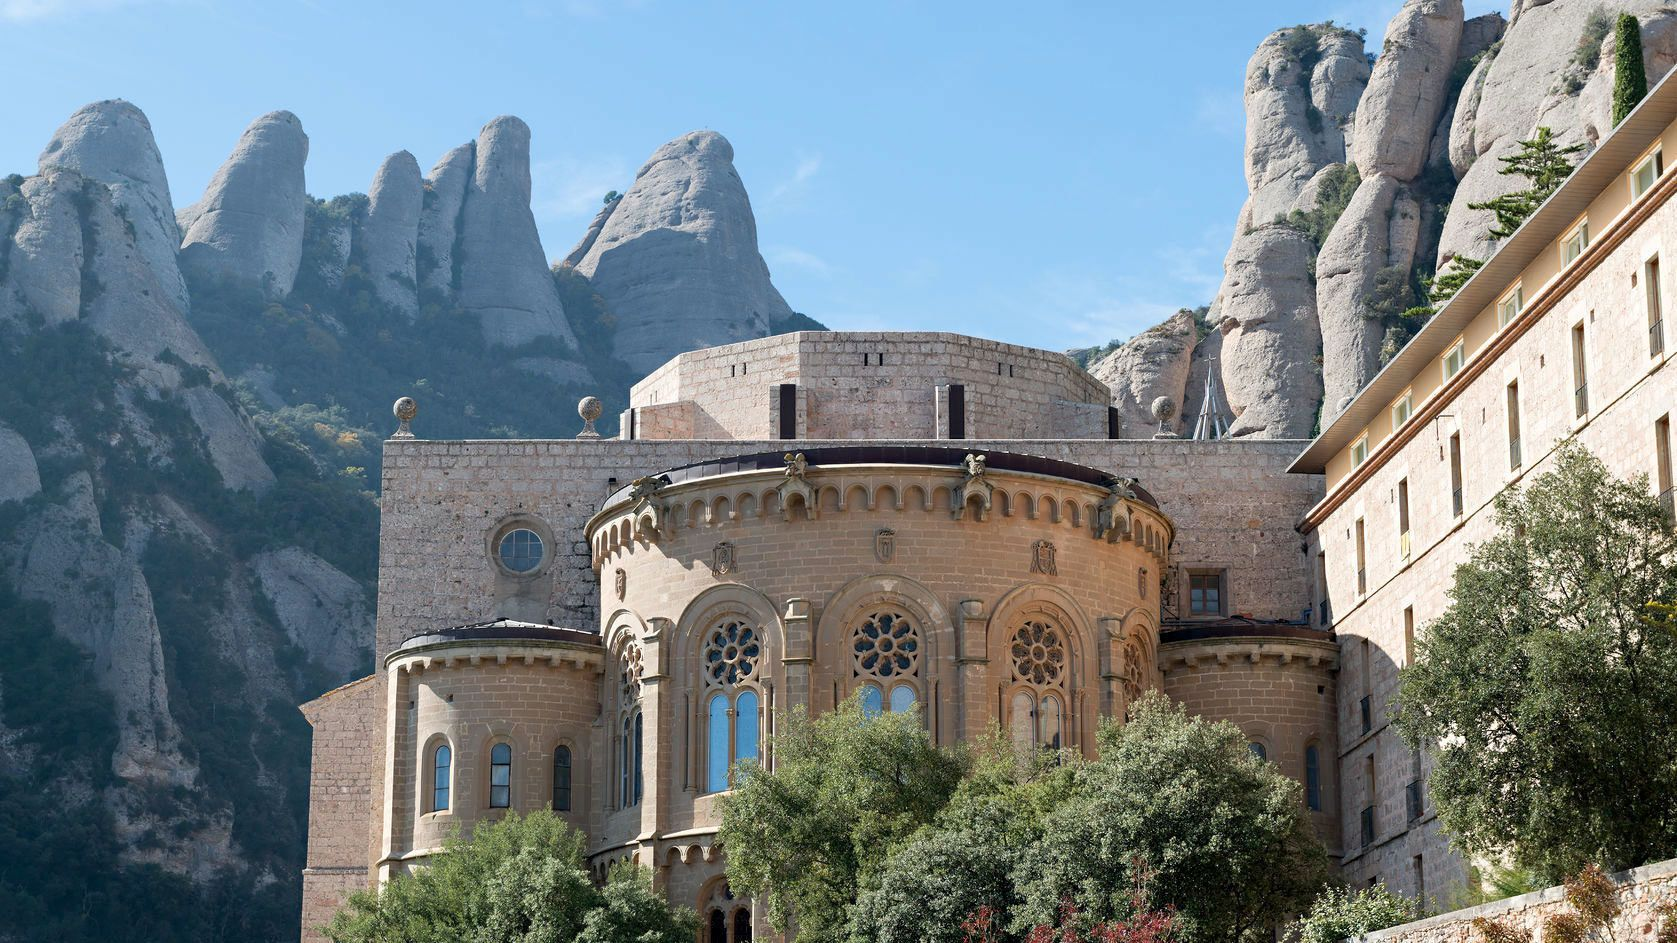 Monastery at Montserrat with mountains in the background